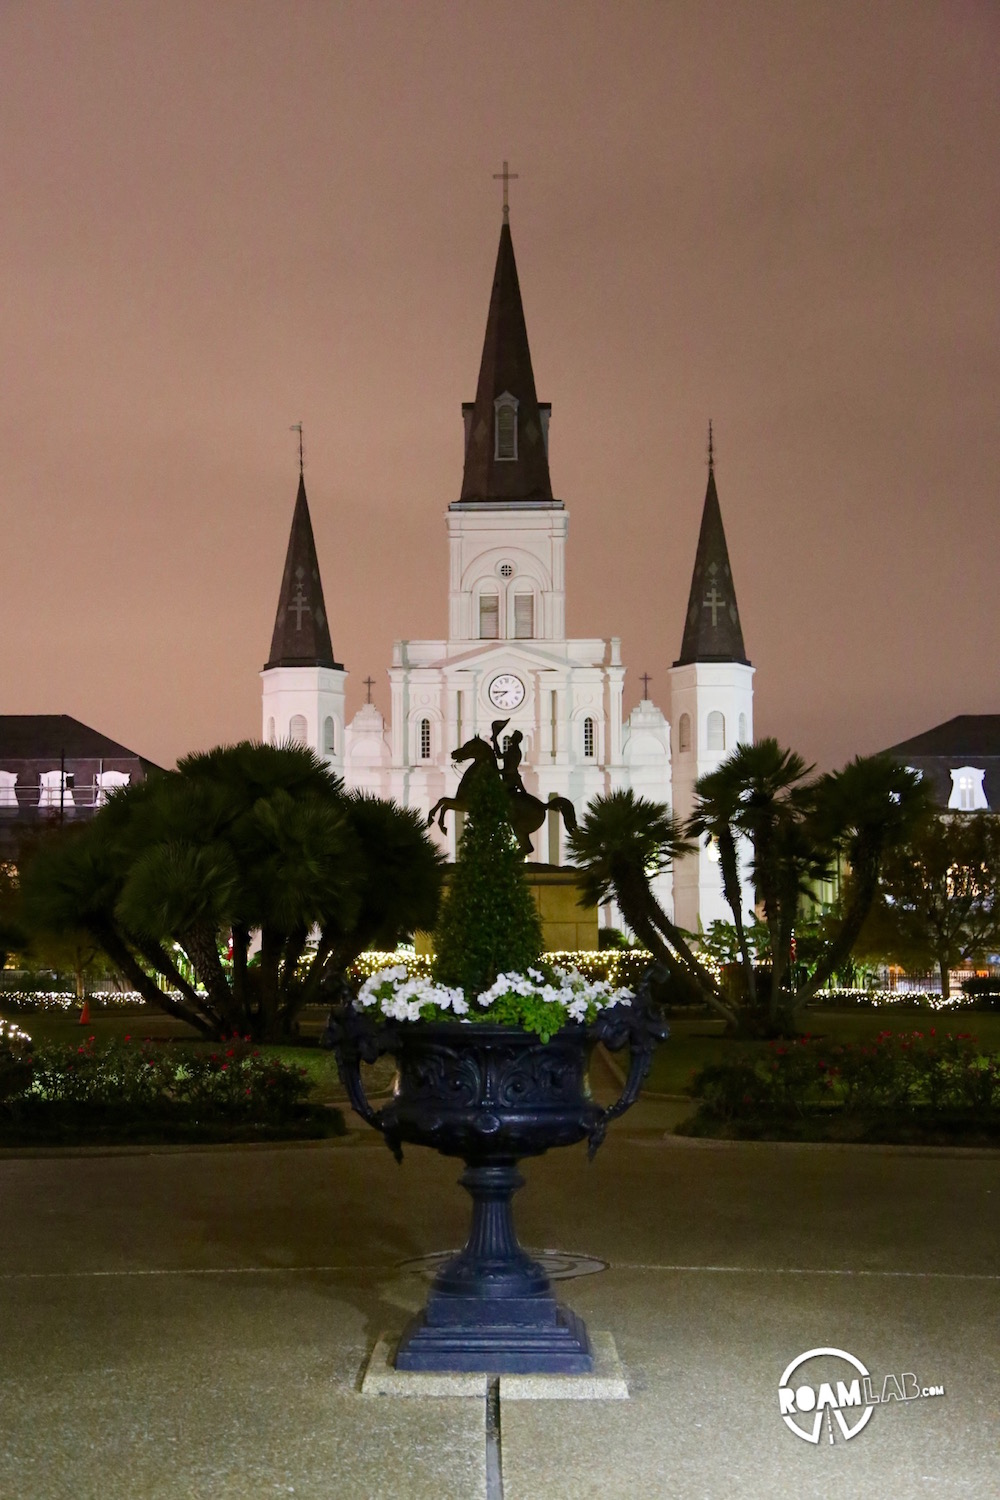 We paused to note the striking silhouette of the St. Louis Cathedral in New Orleans.